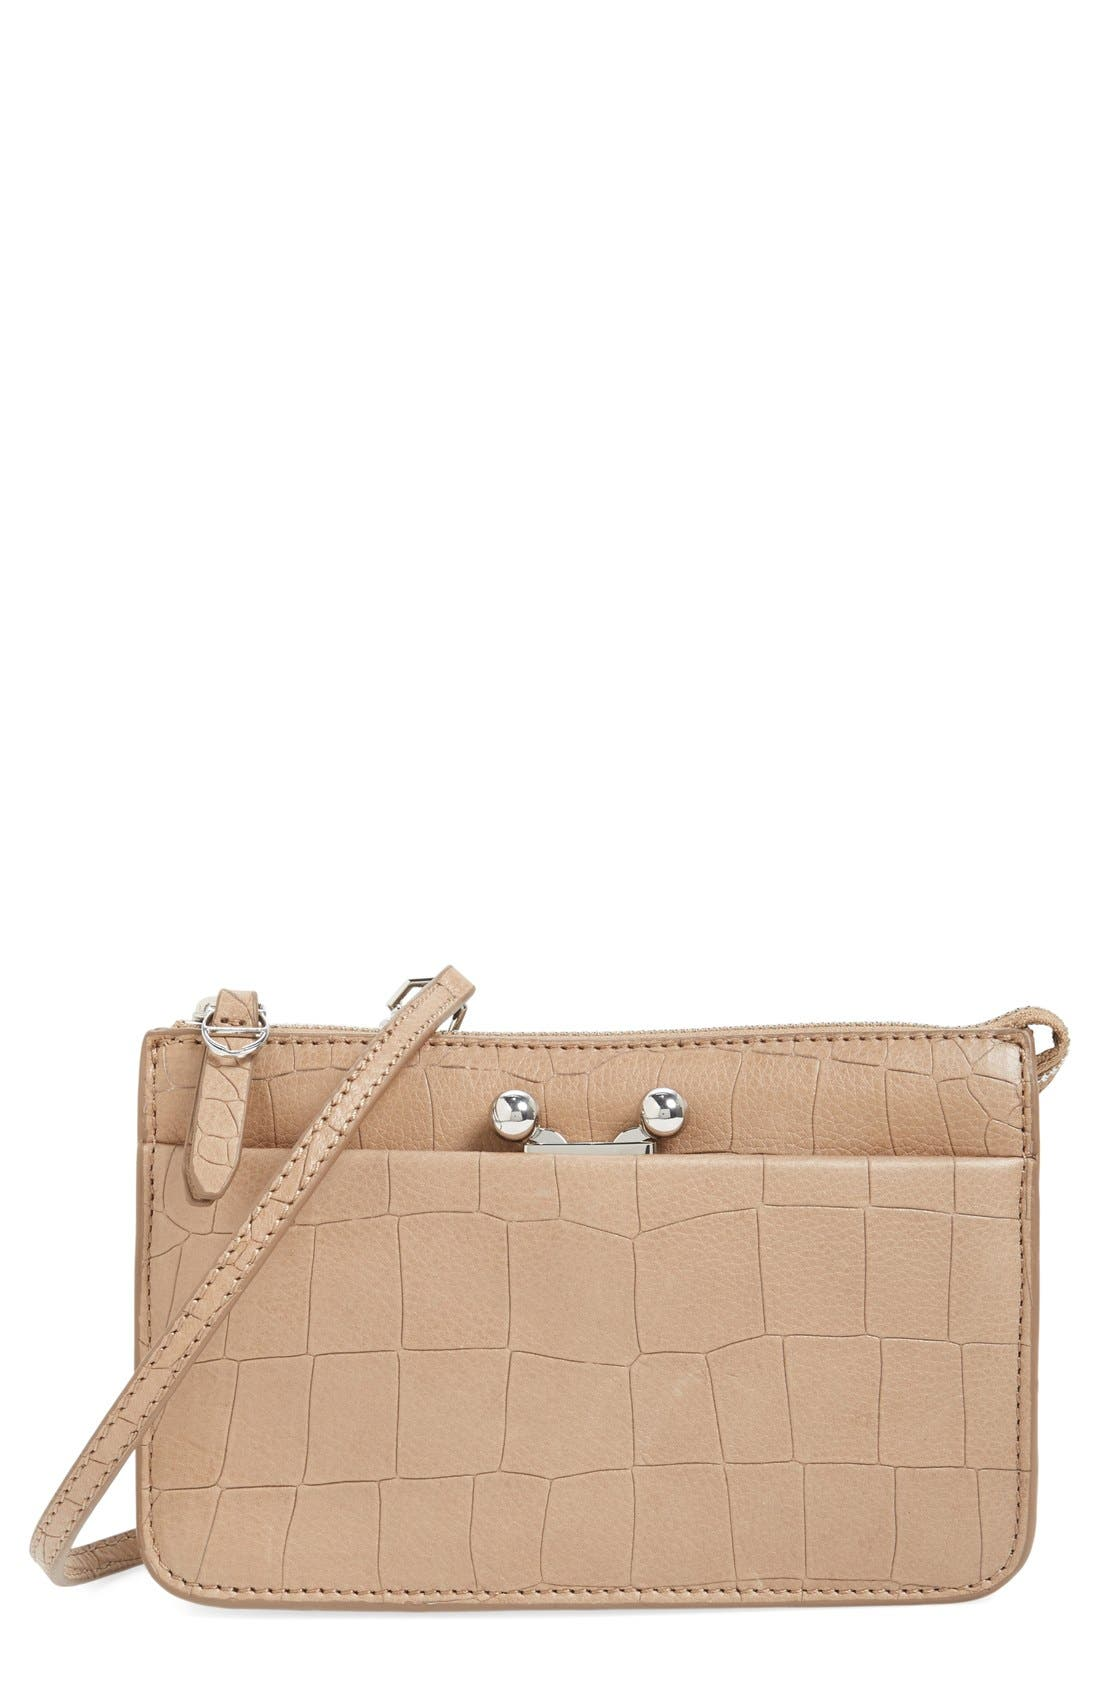 Main Image - Etienne Aigner 'Paley' Croc Embossed Leather Crossbody Bag